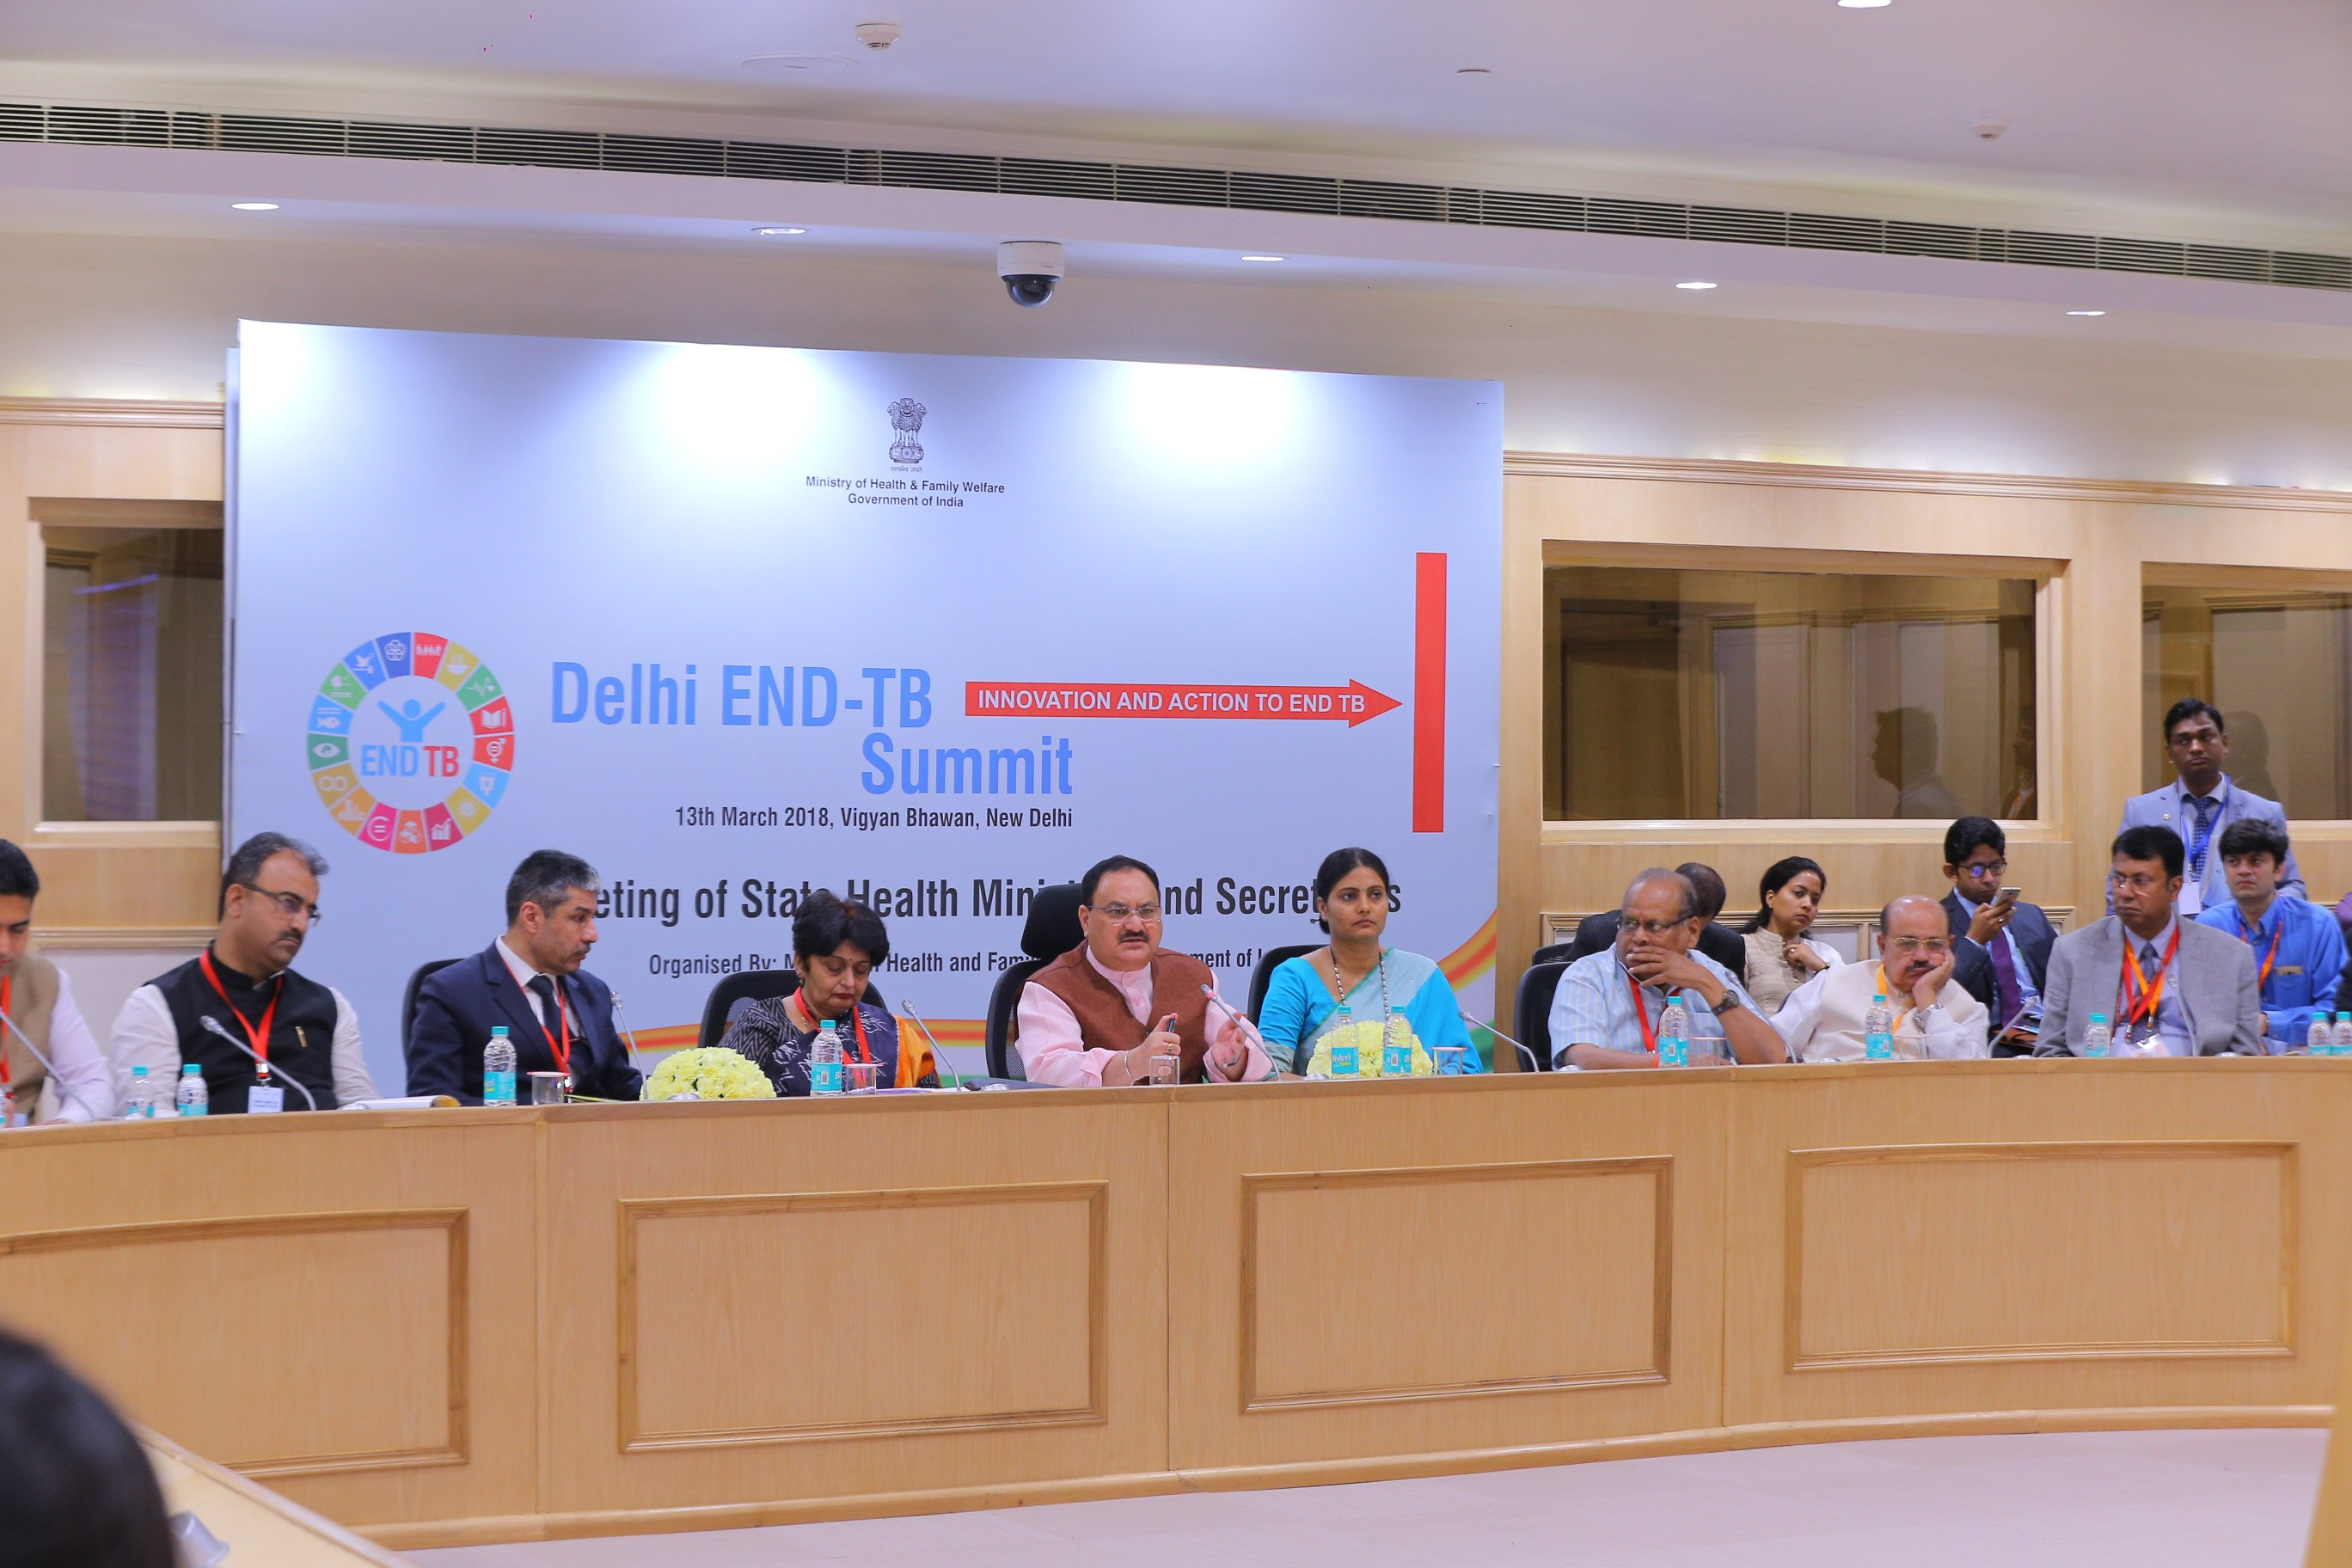 11. Minister MoHFW review the action taken on tuberculosis with State Health Minister in side meetings at Vigyan Bhawan (13th March 2018) 1